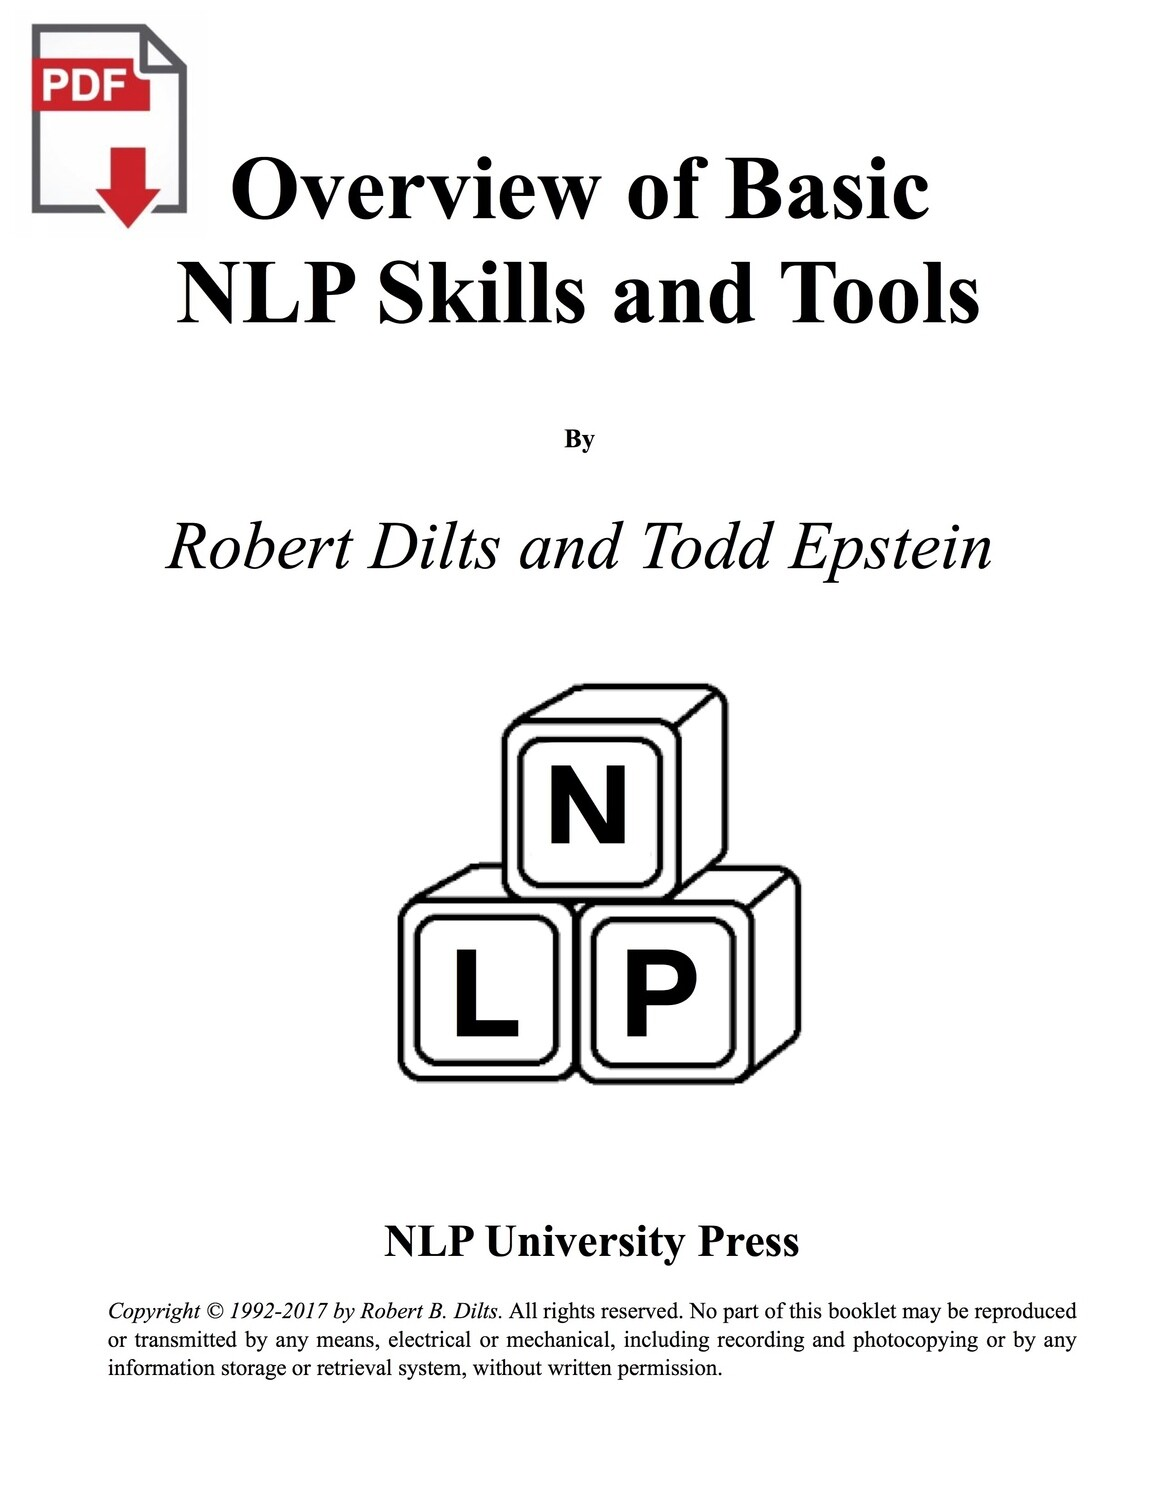 Overview of Basic NLP Skills and Tools [PDF]